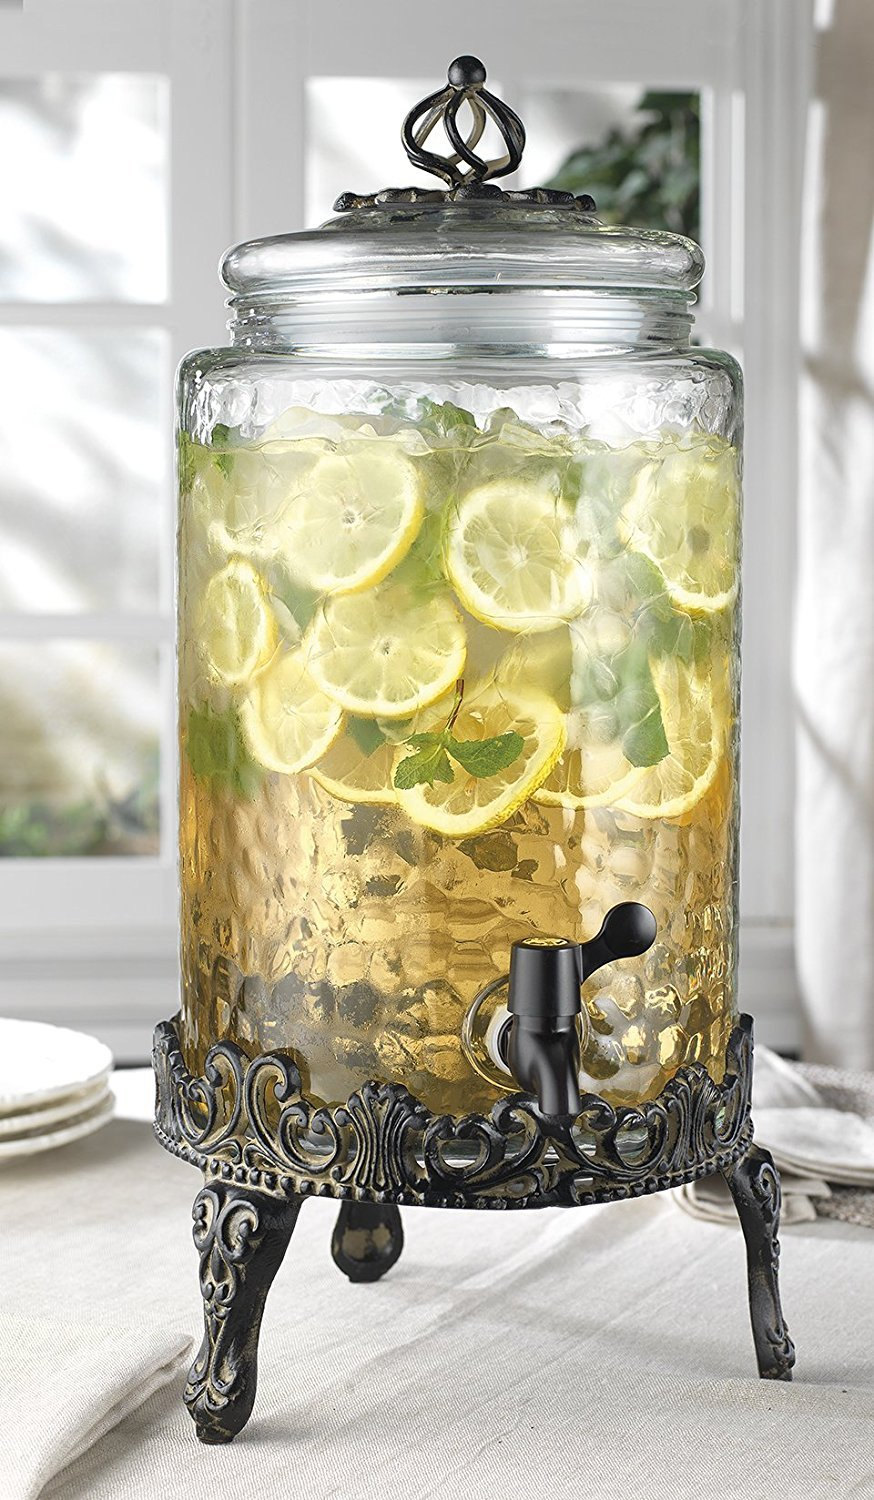 Elegant Home Hammered Glass Ice Cold Beverage Drink Dispenser - 2.7 Gallon, With Glass Lid and Antique Metal Stand, 100% Leak Proof Spigot- Wide Mouth Easy Filling For Outdoor, Parties & Daily Use